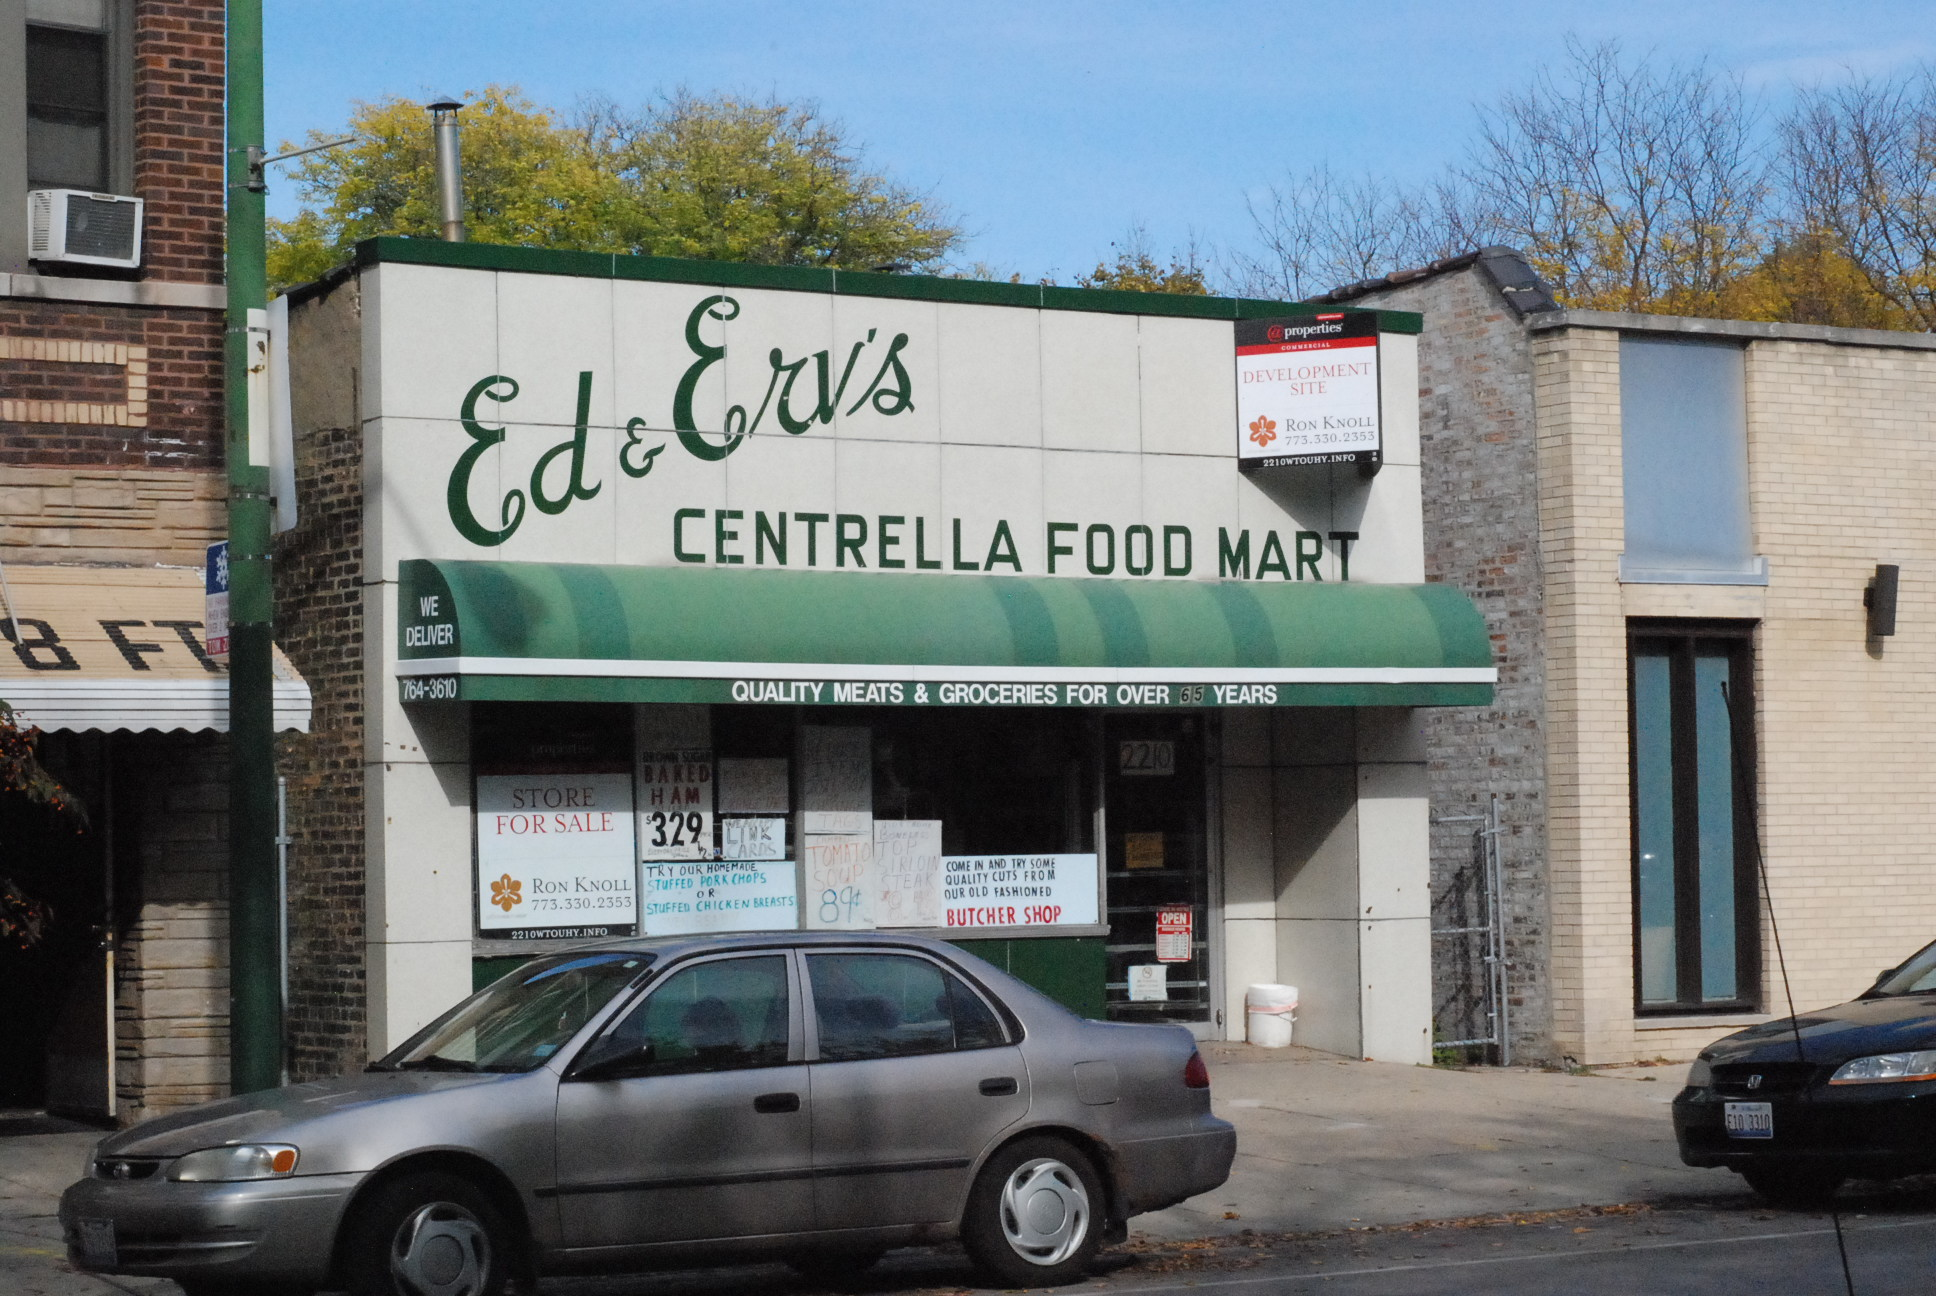 Mondl's father, Erv Mondl, co-founded the neighborhood grocery 47 years ago on Touhy Ave. in Chicago's Rogers Park neighborhood. (WBEZ/Odette Yousef)